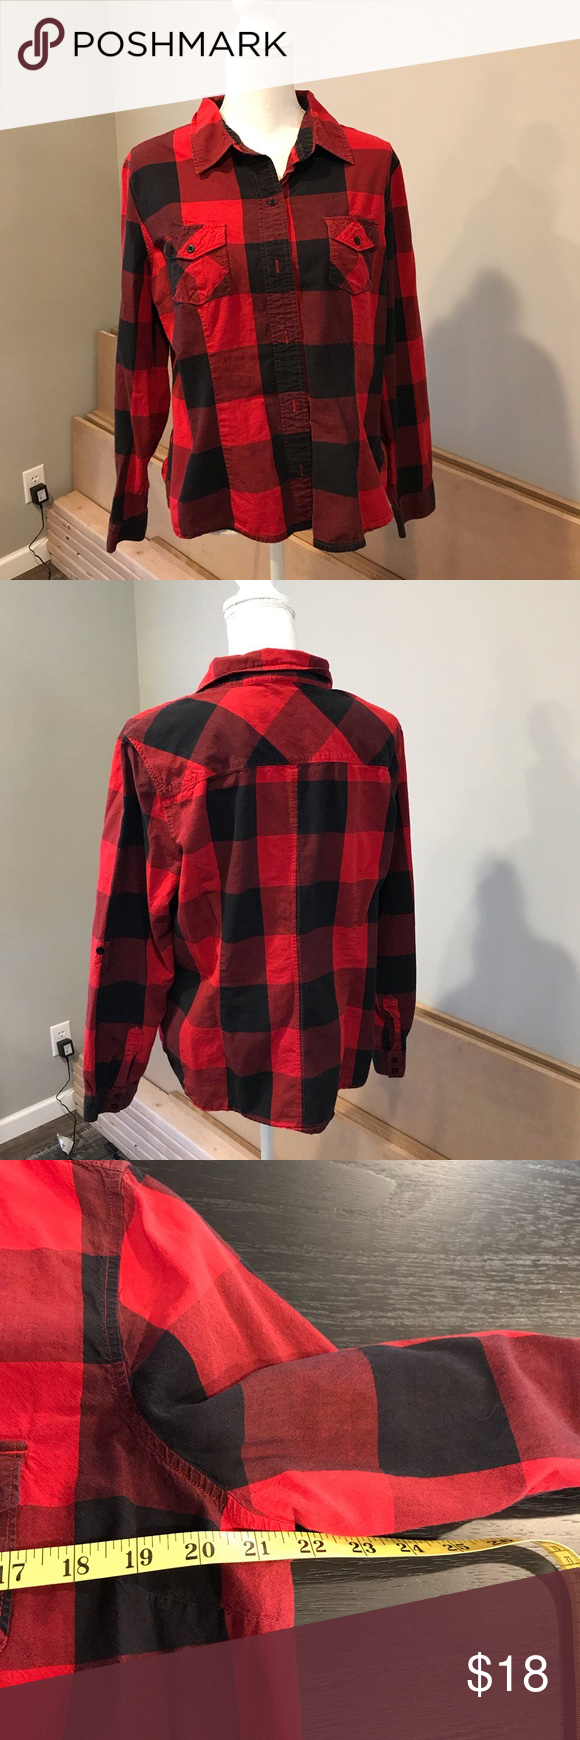 79531ead Cato buffalo plaid button down shirt Cato EUC Red and black buffalo button  down shirt Size XL 100% cotton Cato Tops Button Down Shirts